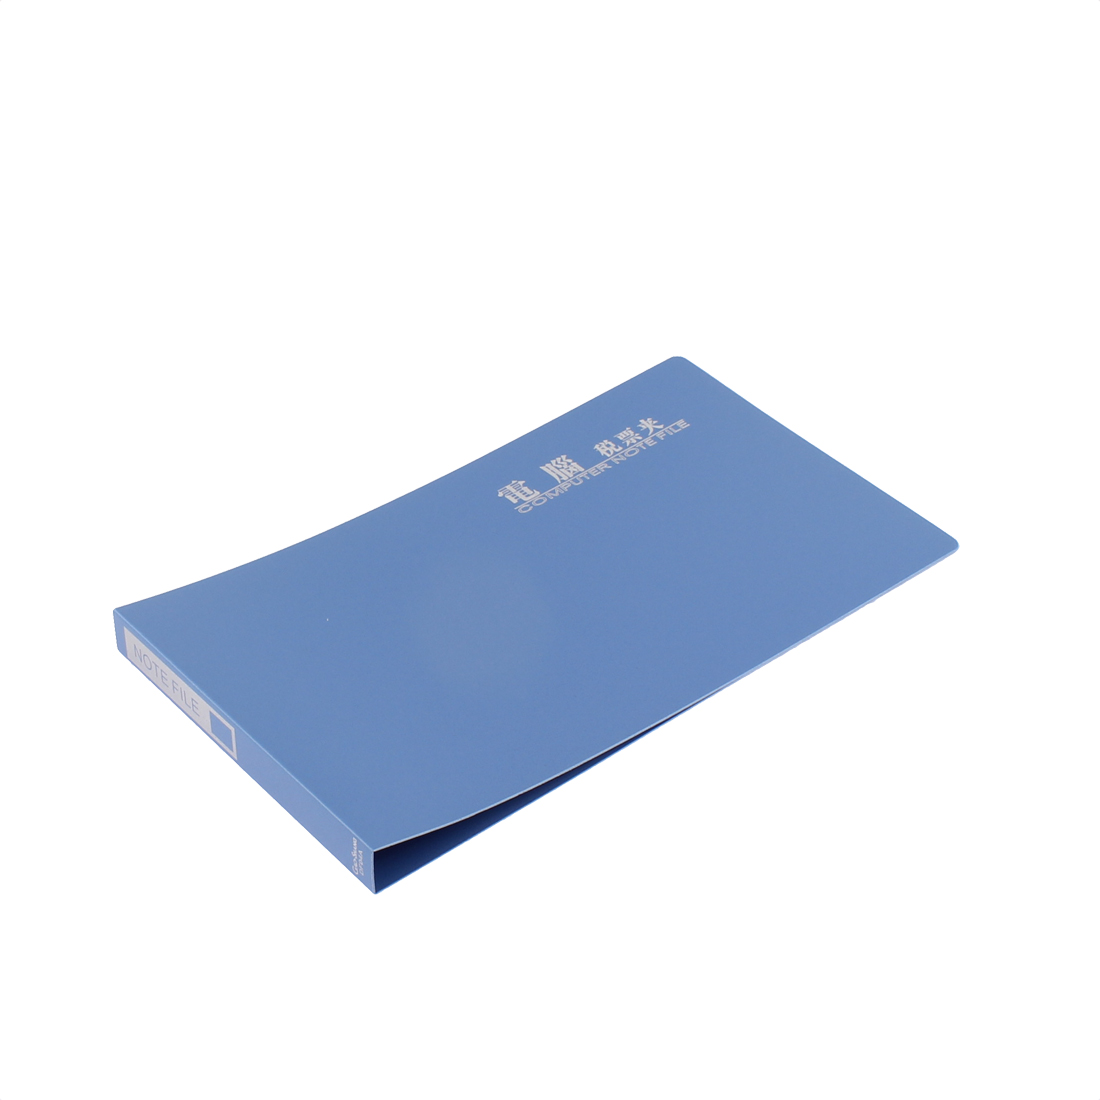 Office Blue Plastic Cover Check File Folder Clip Organizer Holder